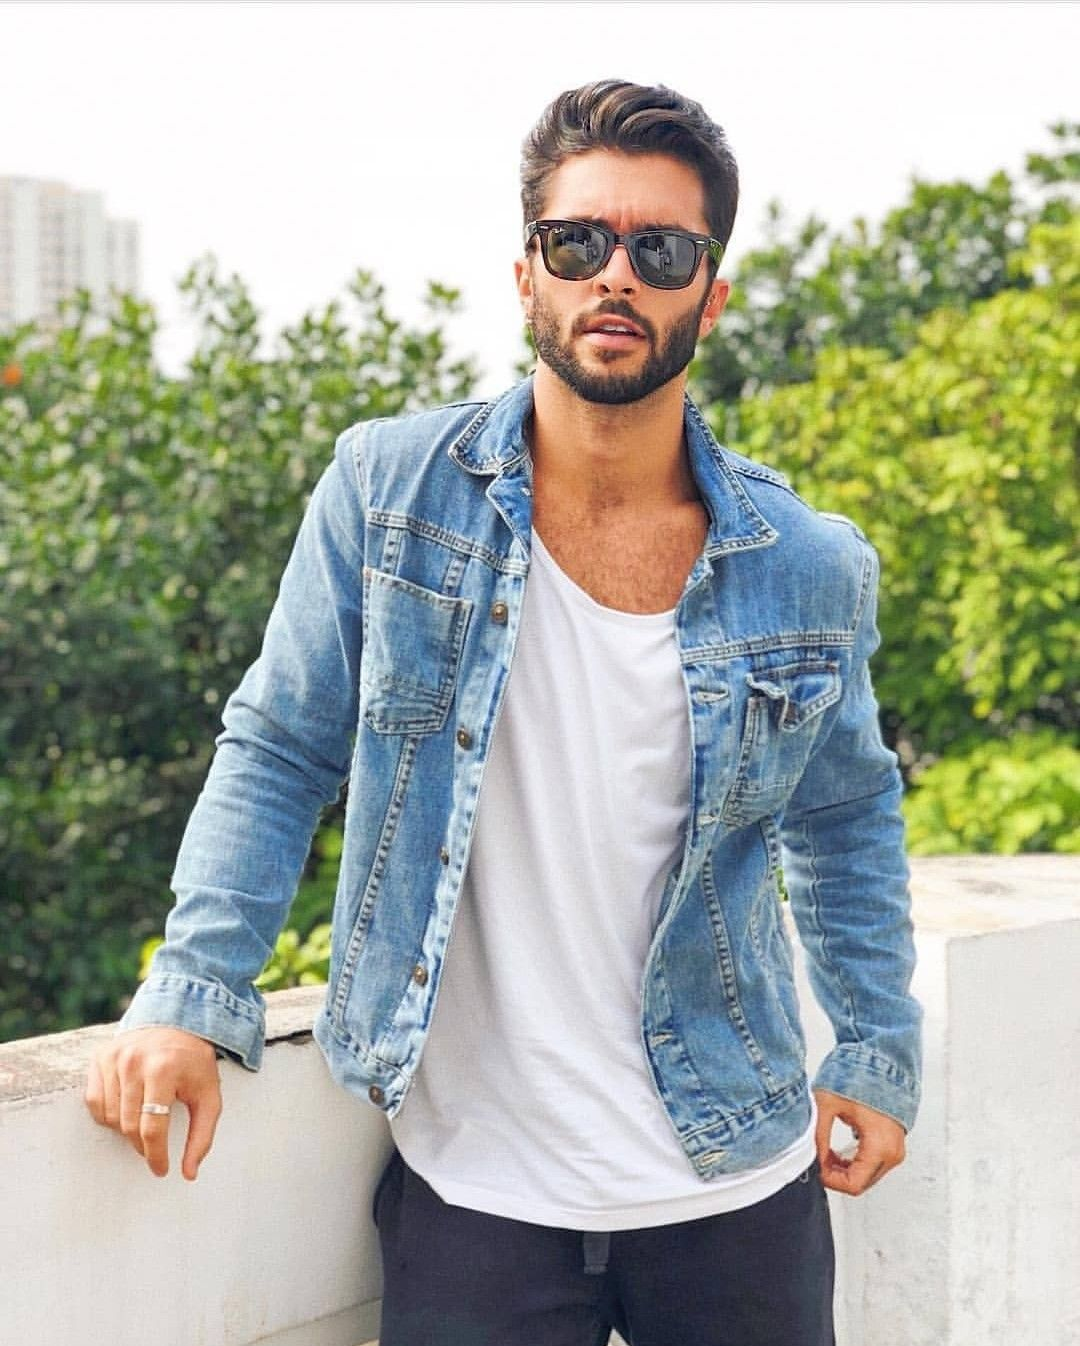 Classic White Shirt And Denim Jacket Look Great Transition Outfit Denimjacket Menstyle Stylish Mens Outfits Denim Jacket Men Denim Jacket Outfit